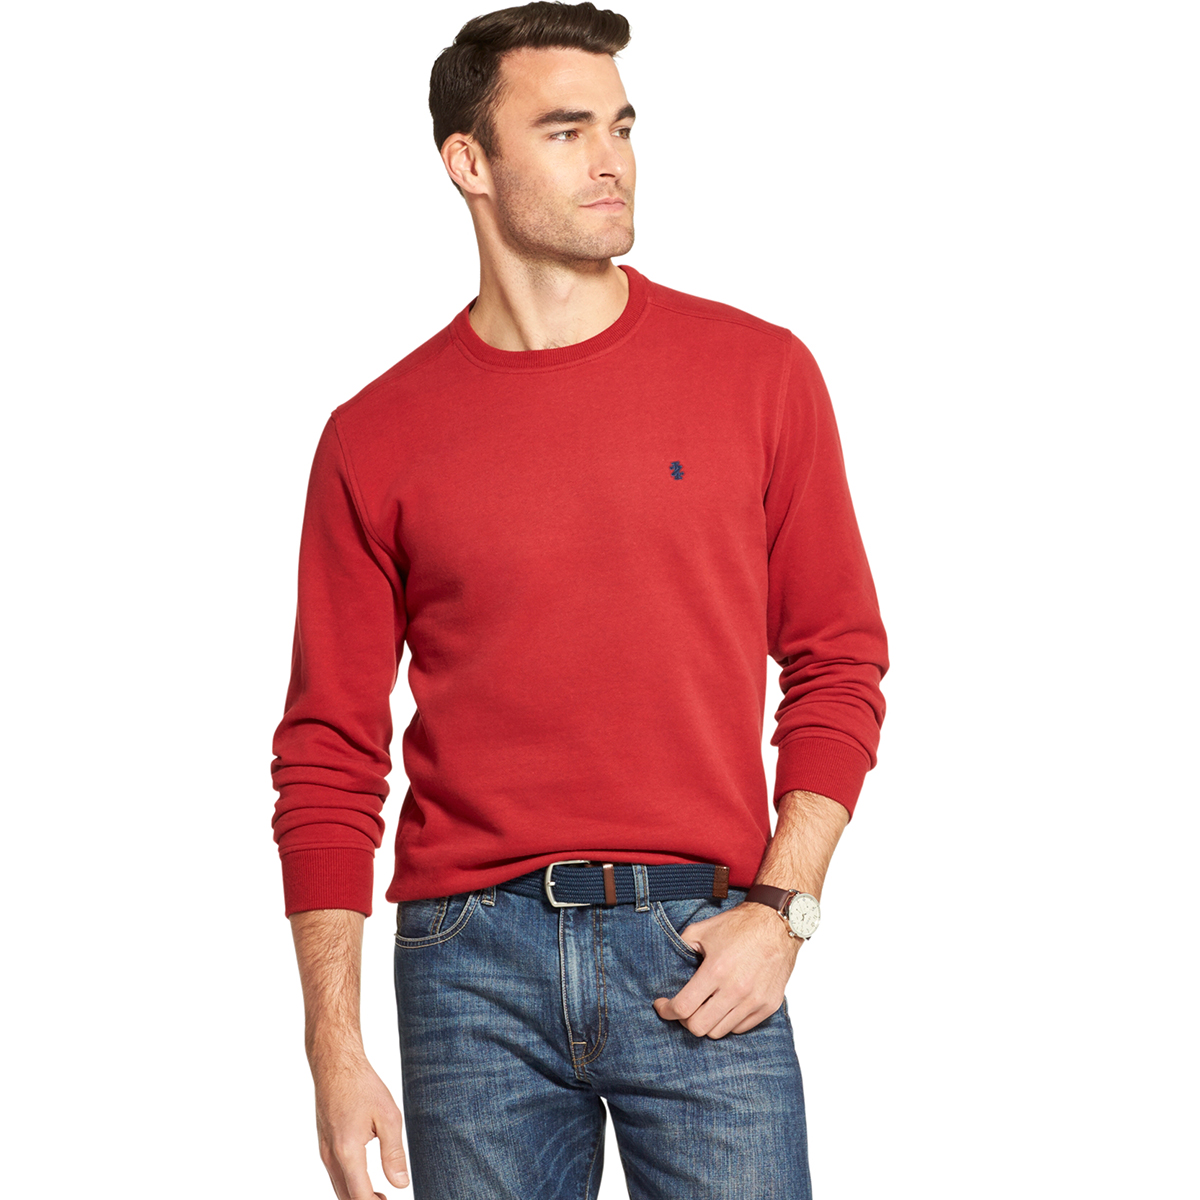 Izod Men's Long-Sleeve Supersoft Fleece Crewneck Sweater - Red, M